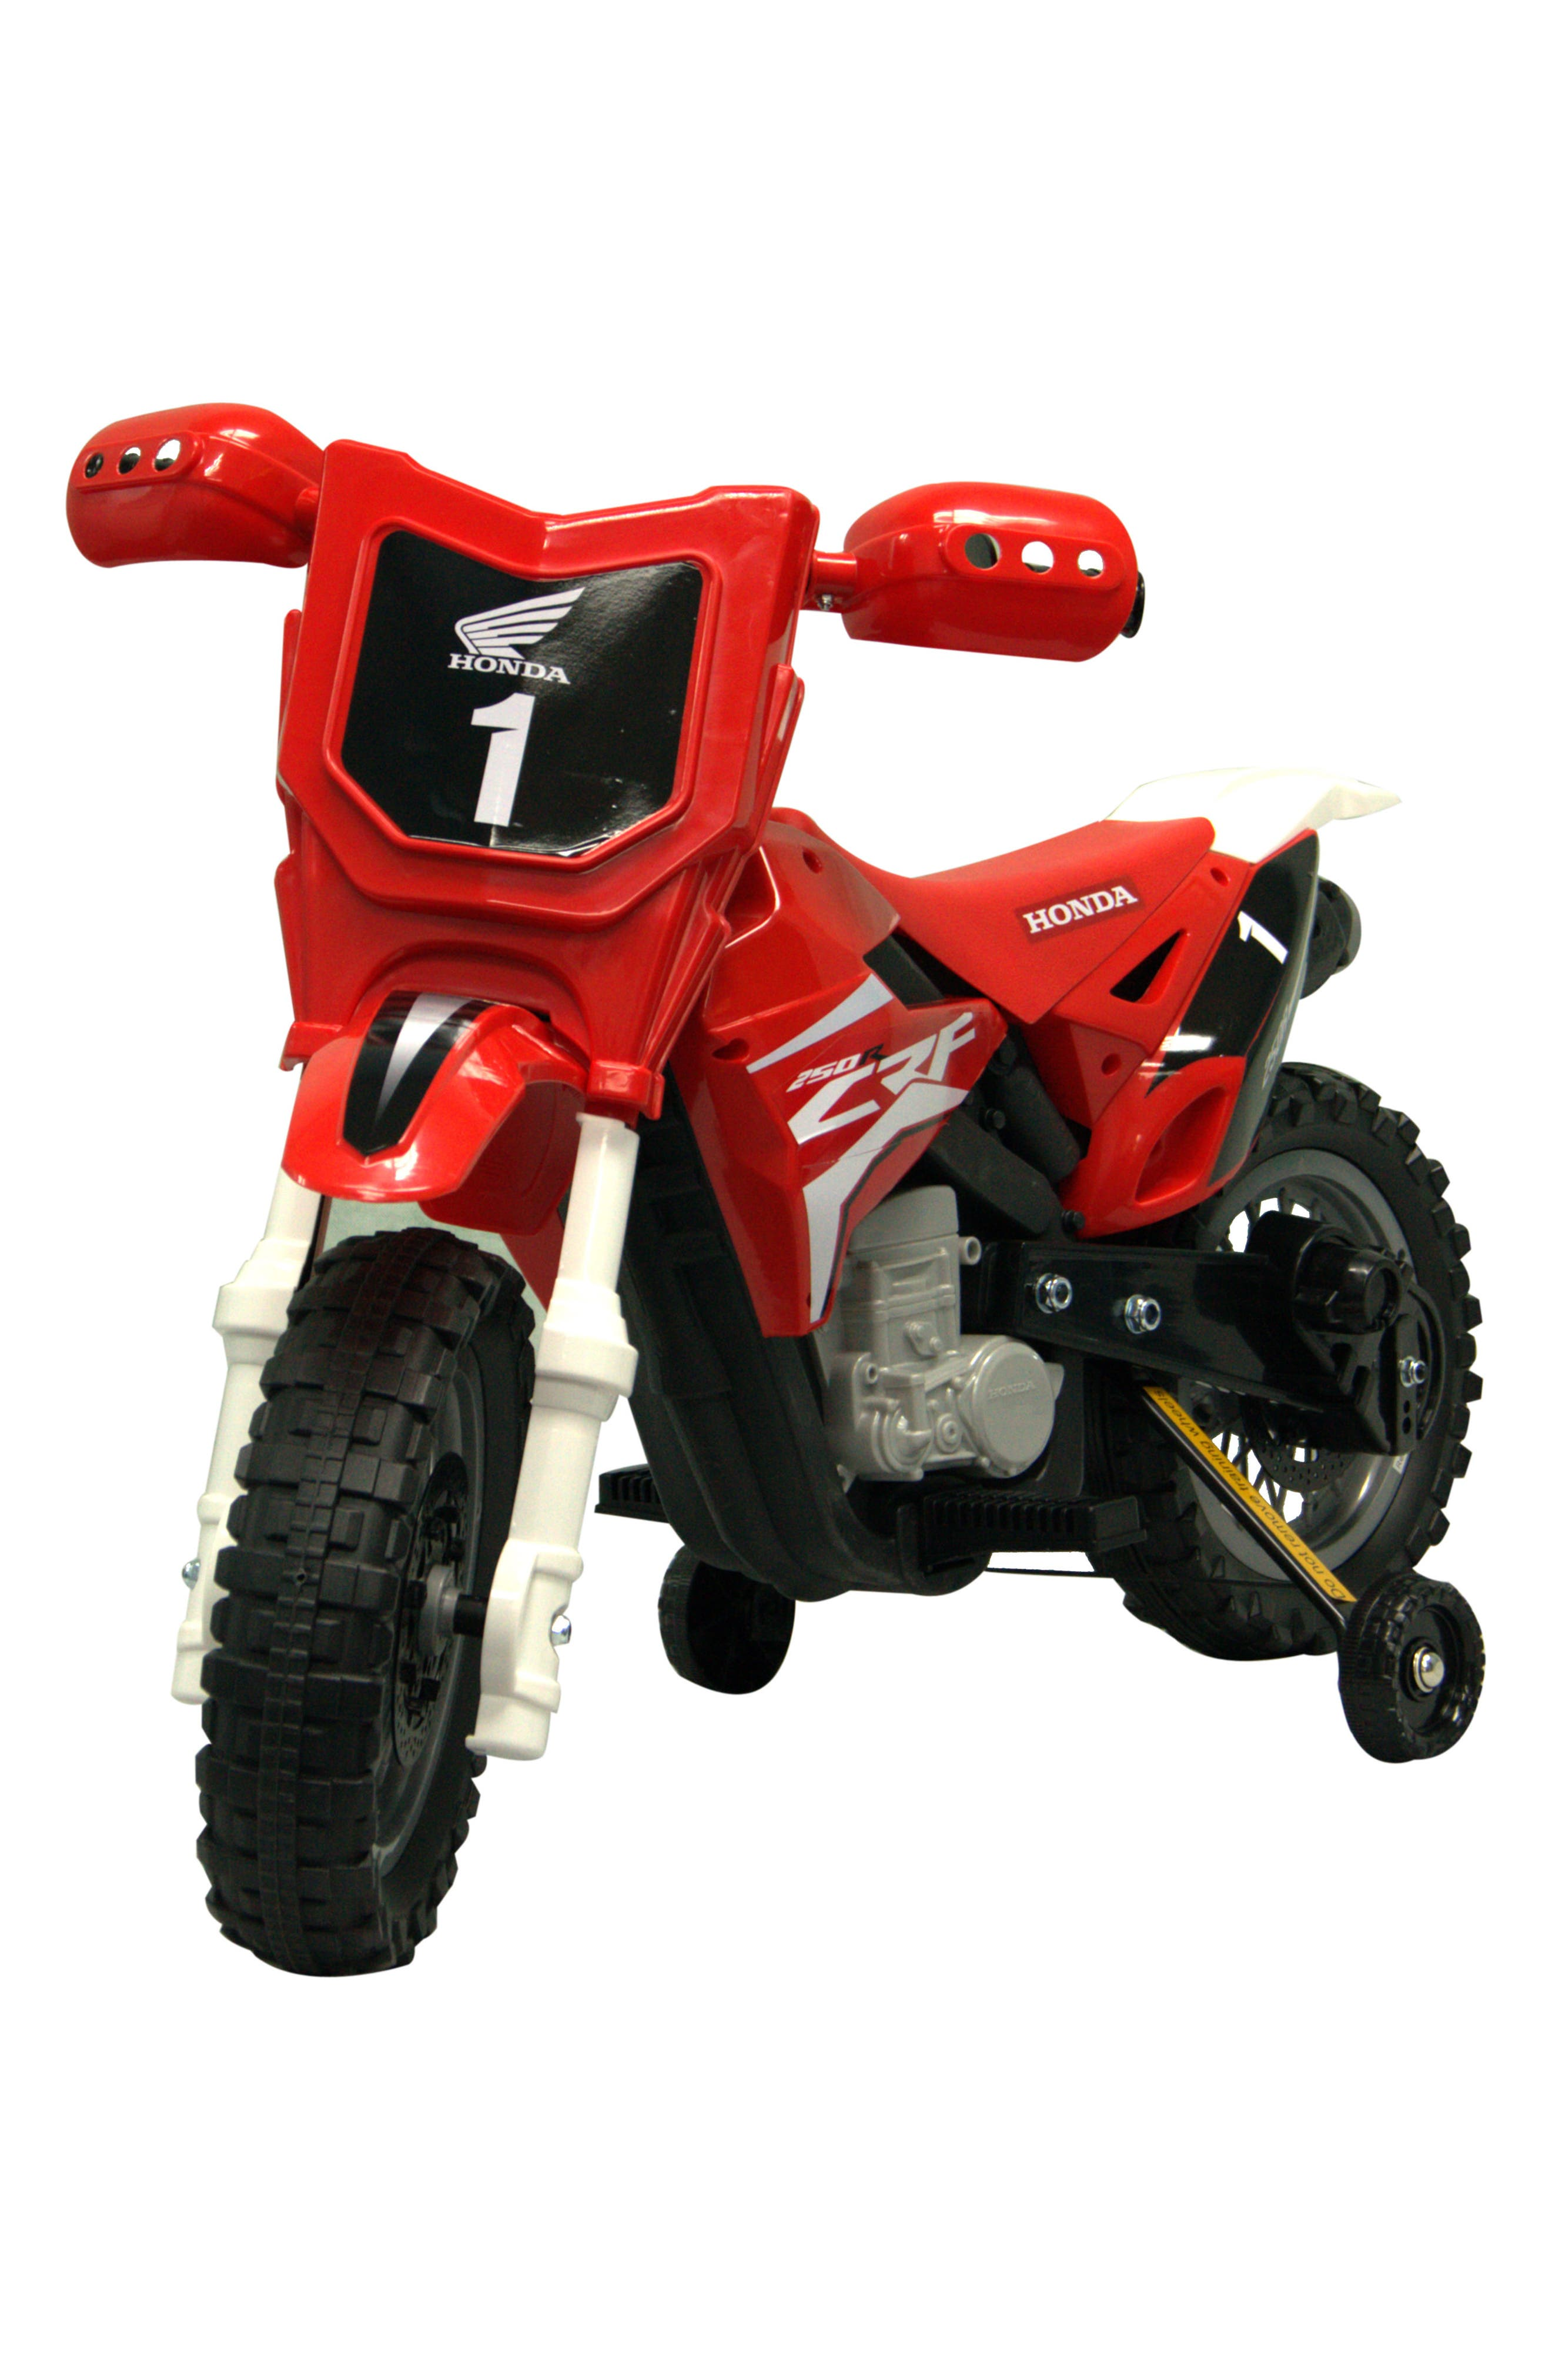 Honda Dirt Bike Ride-On Toy Motorcycle,                             Alternate thumbnail 5, color,                             RED